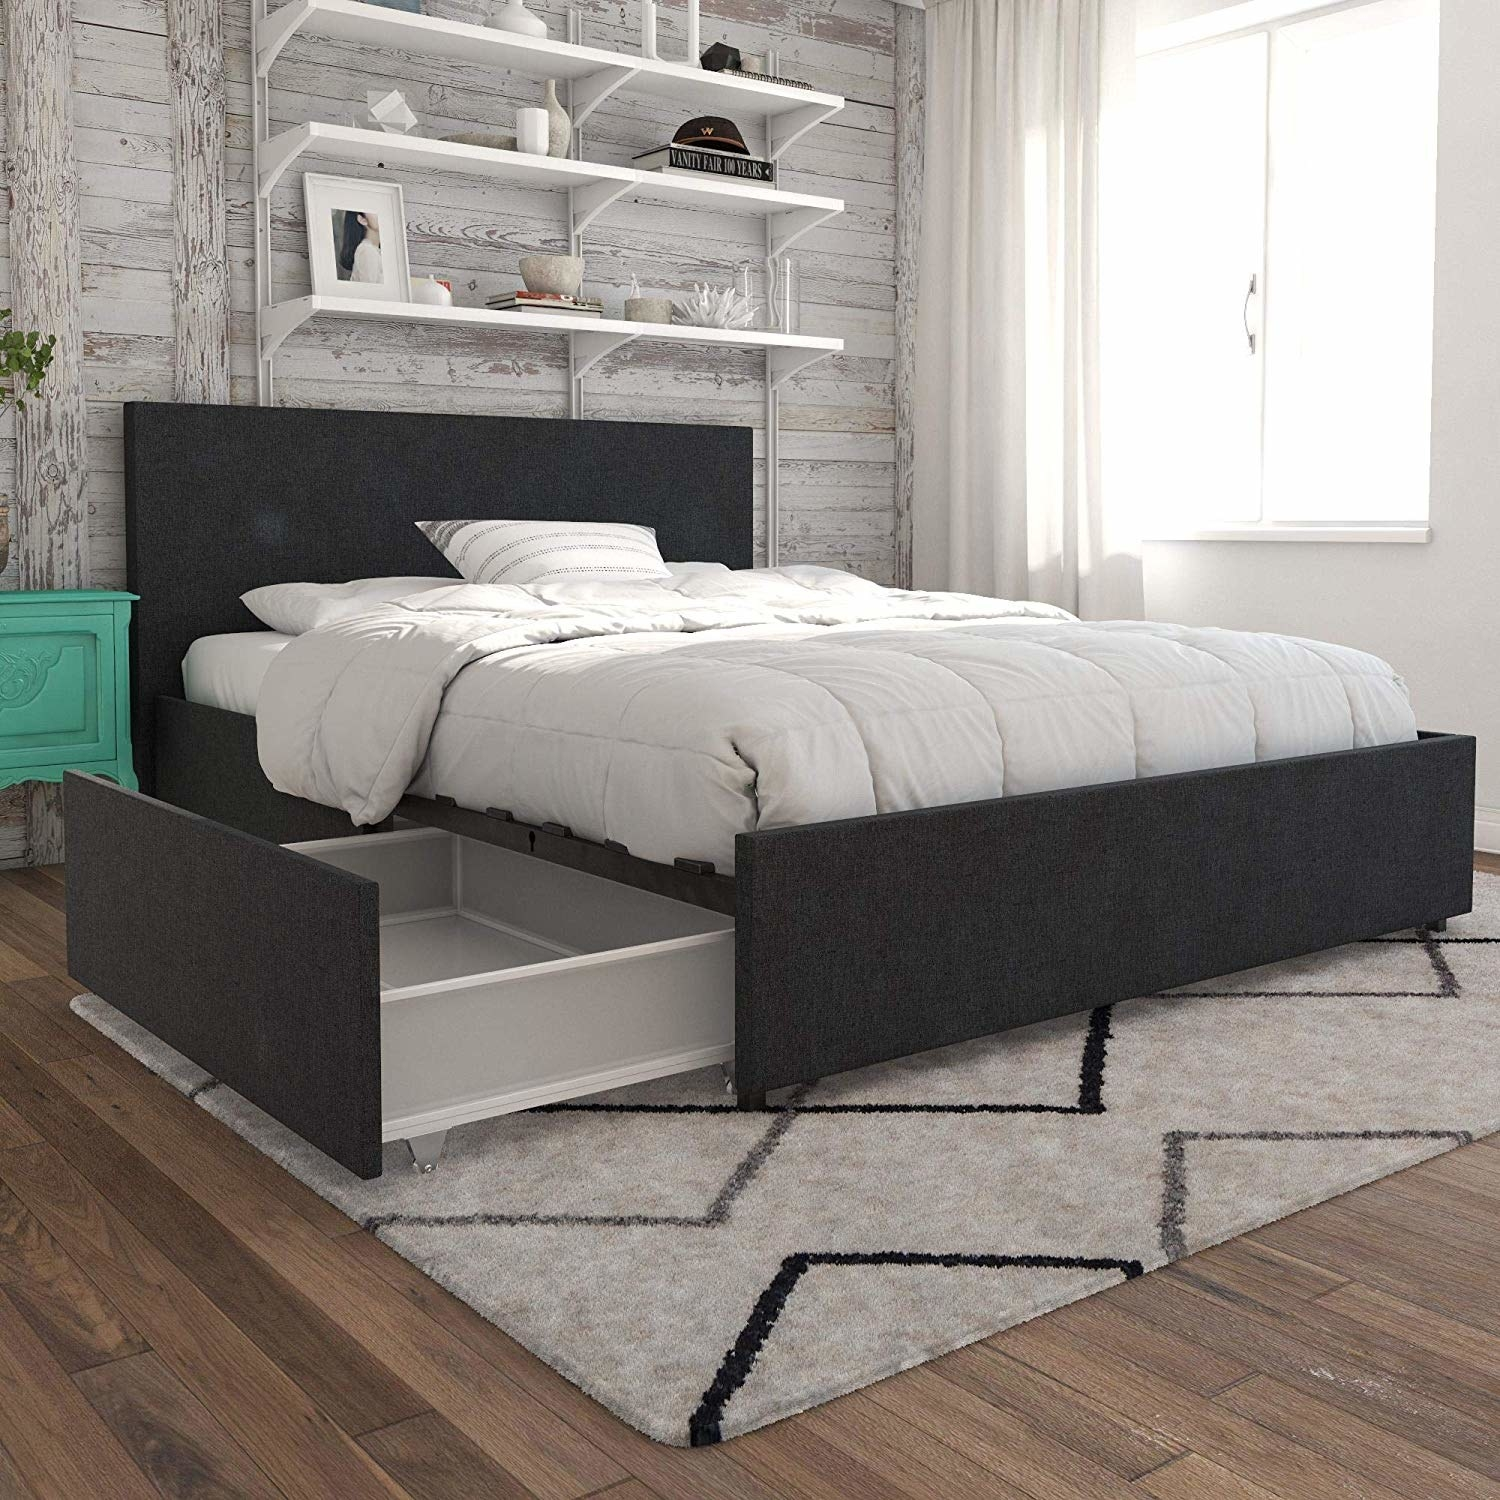 The black bed with drawers underneath